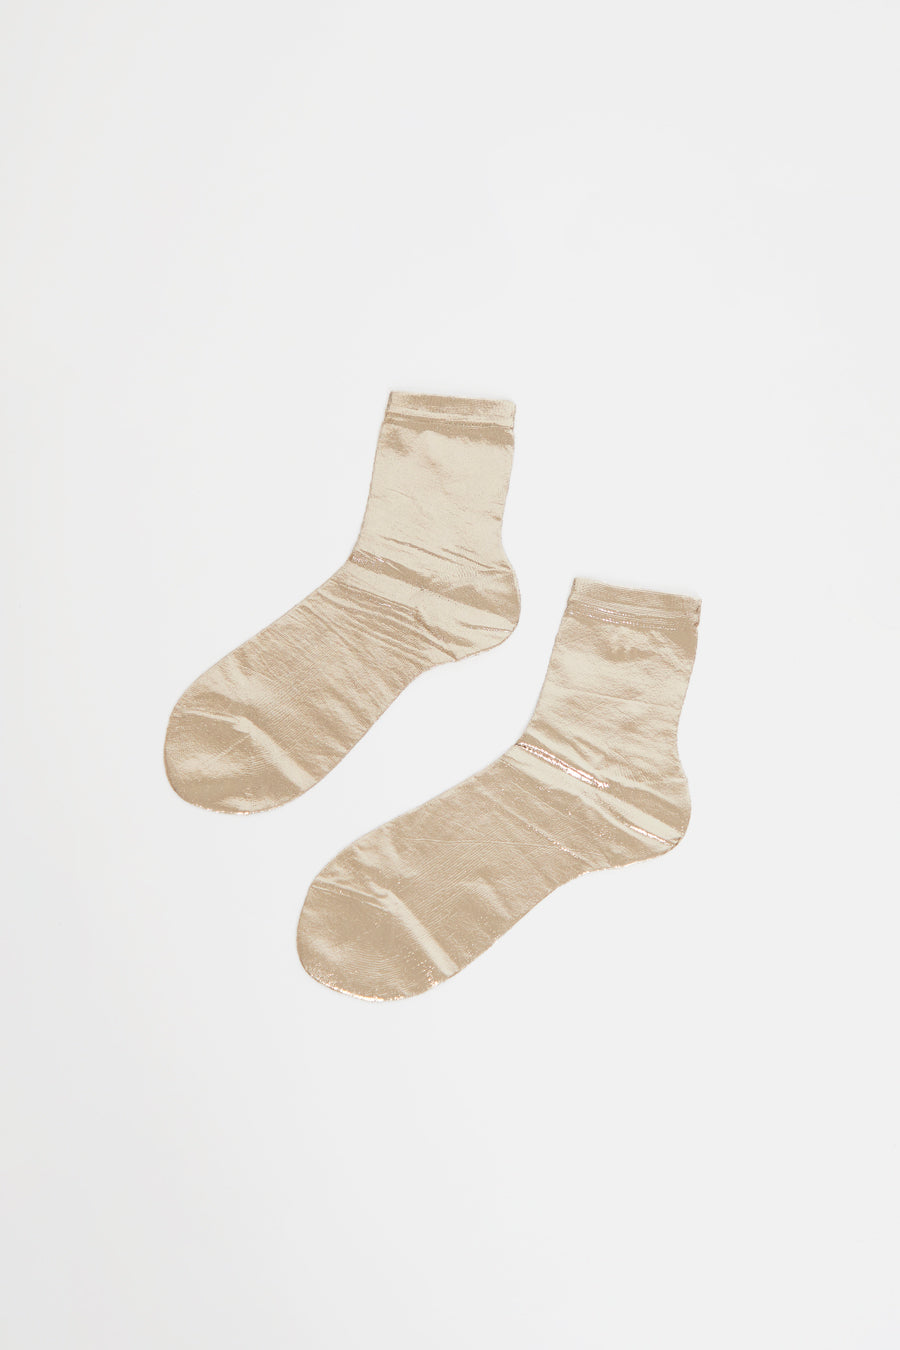 Maria La Rosa Laminated Sock in Platino